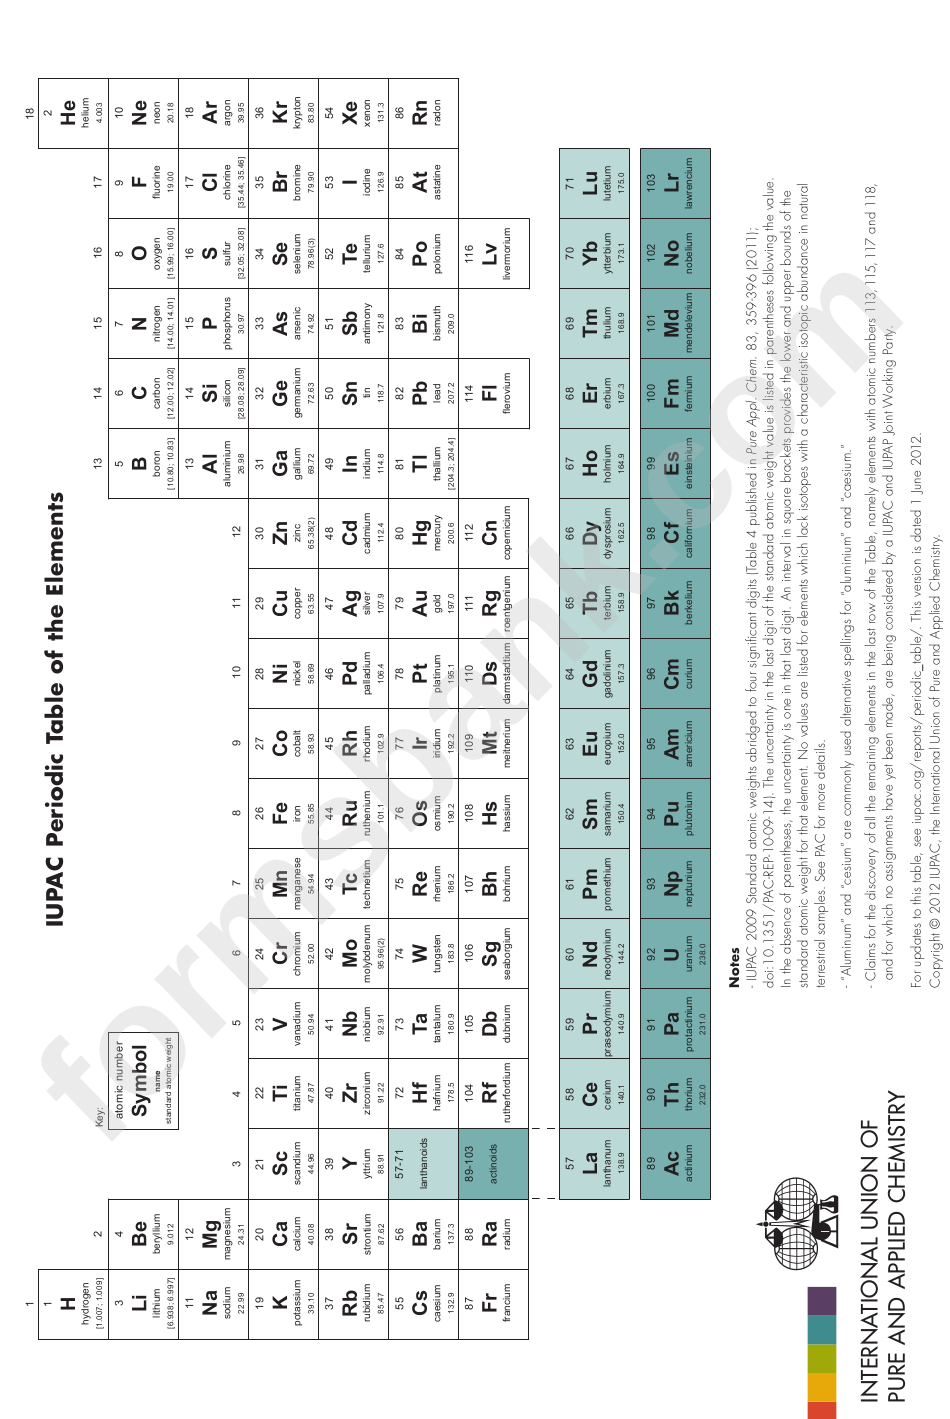 sargent welch periodic table side 2 brokehome - Tabla Periodica Welch